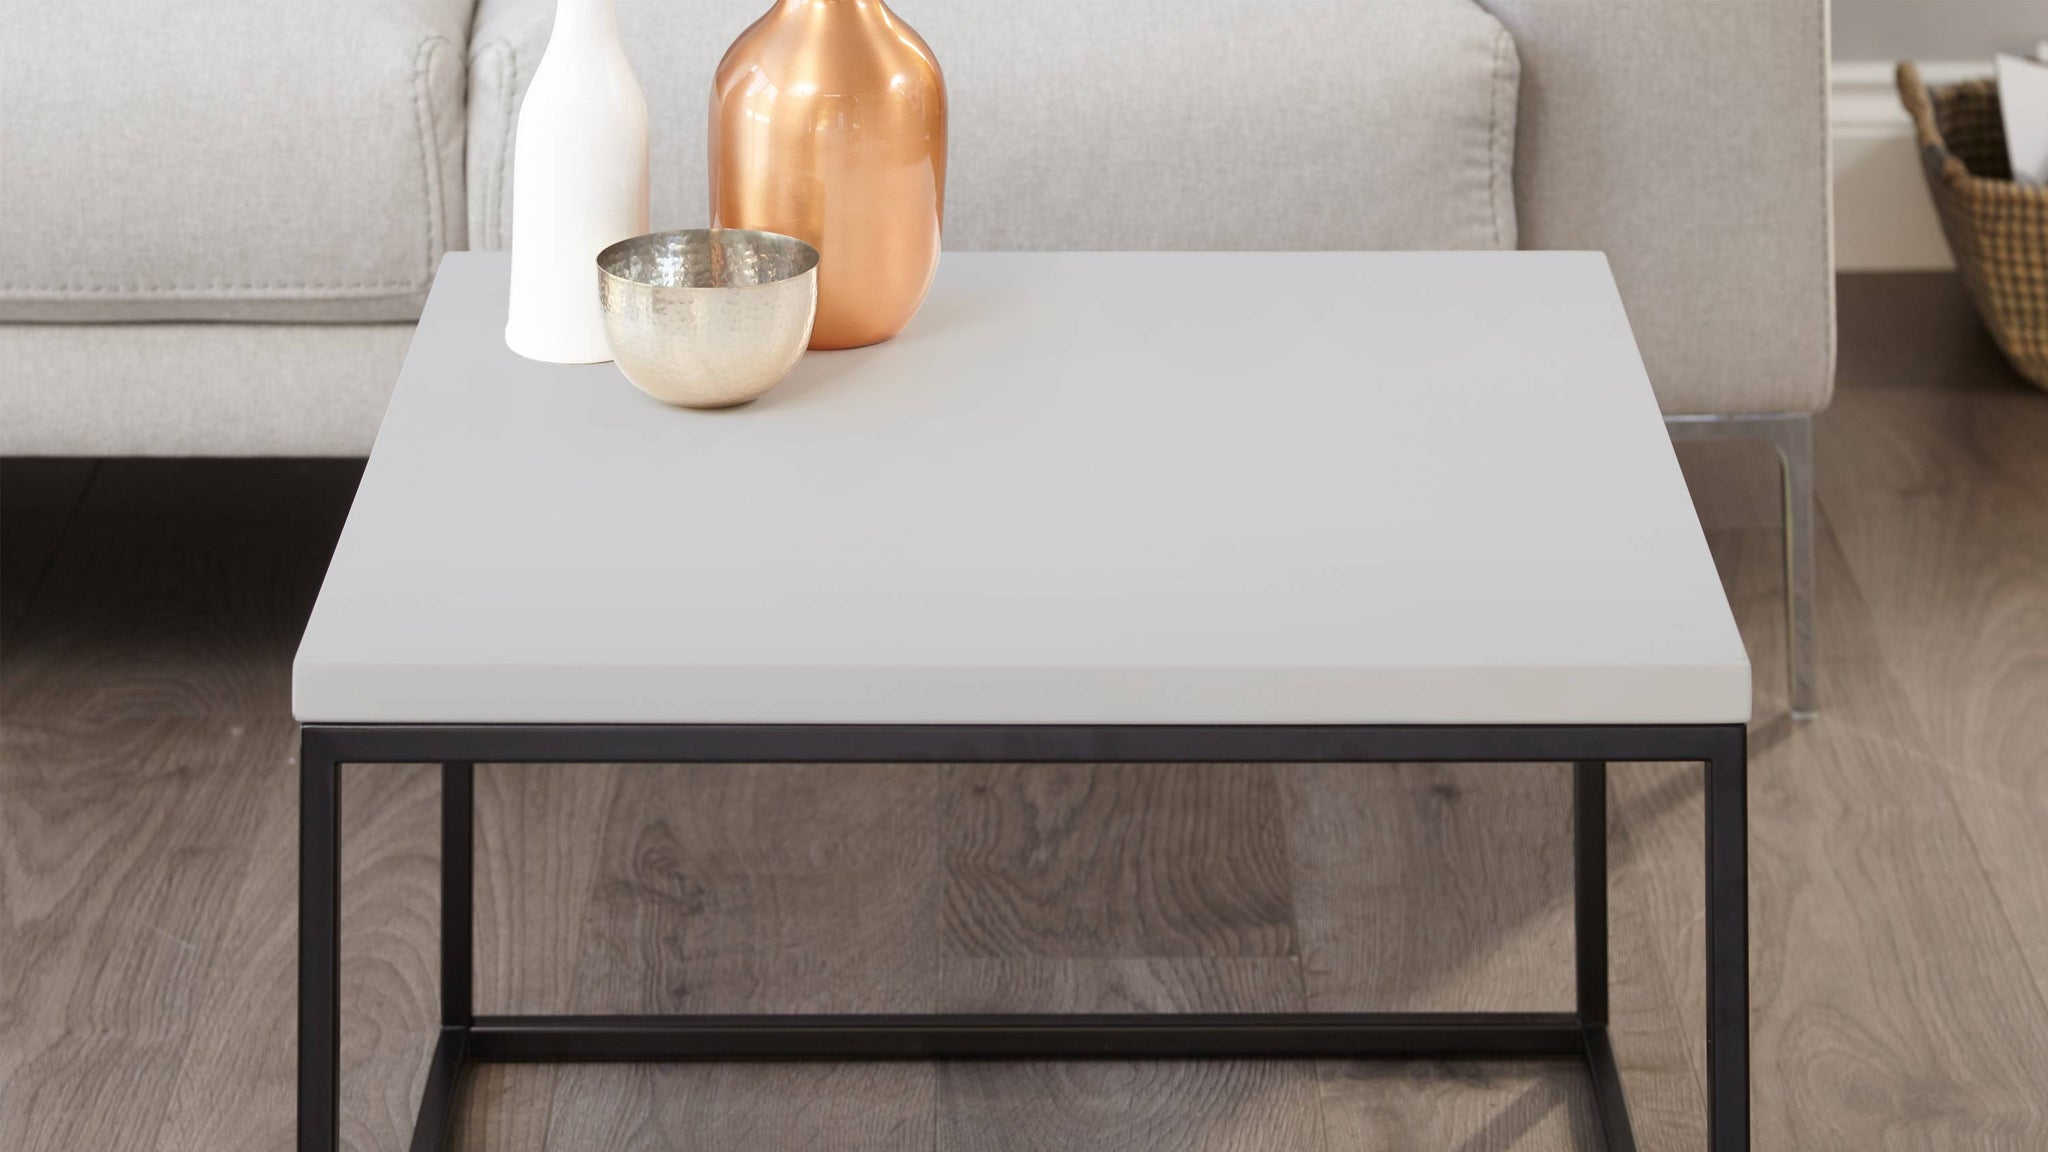 Simple stylish grey coffee table